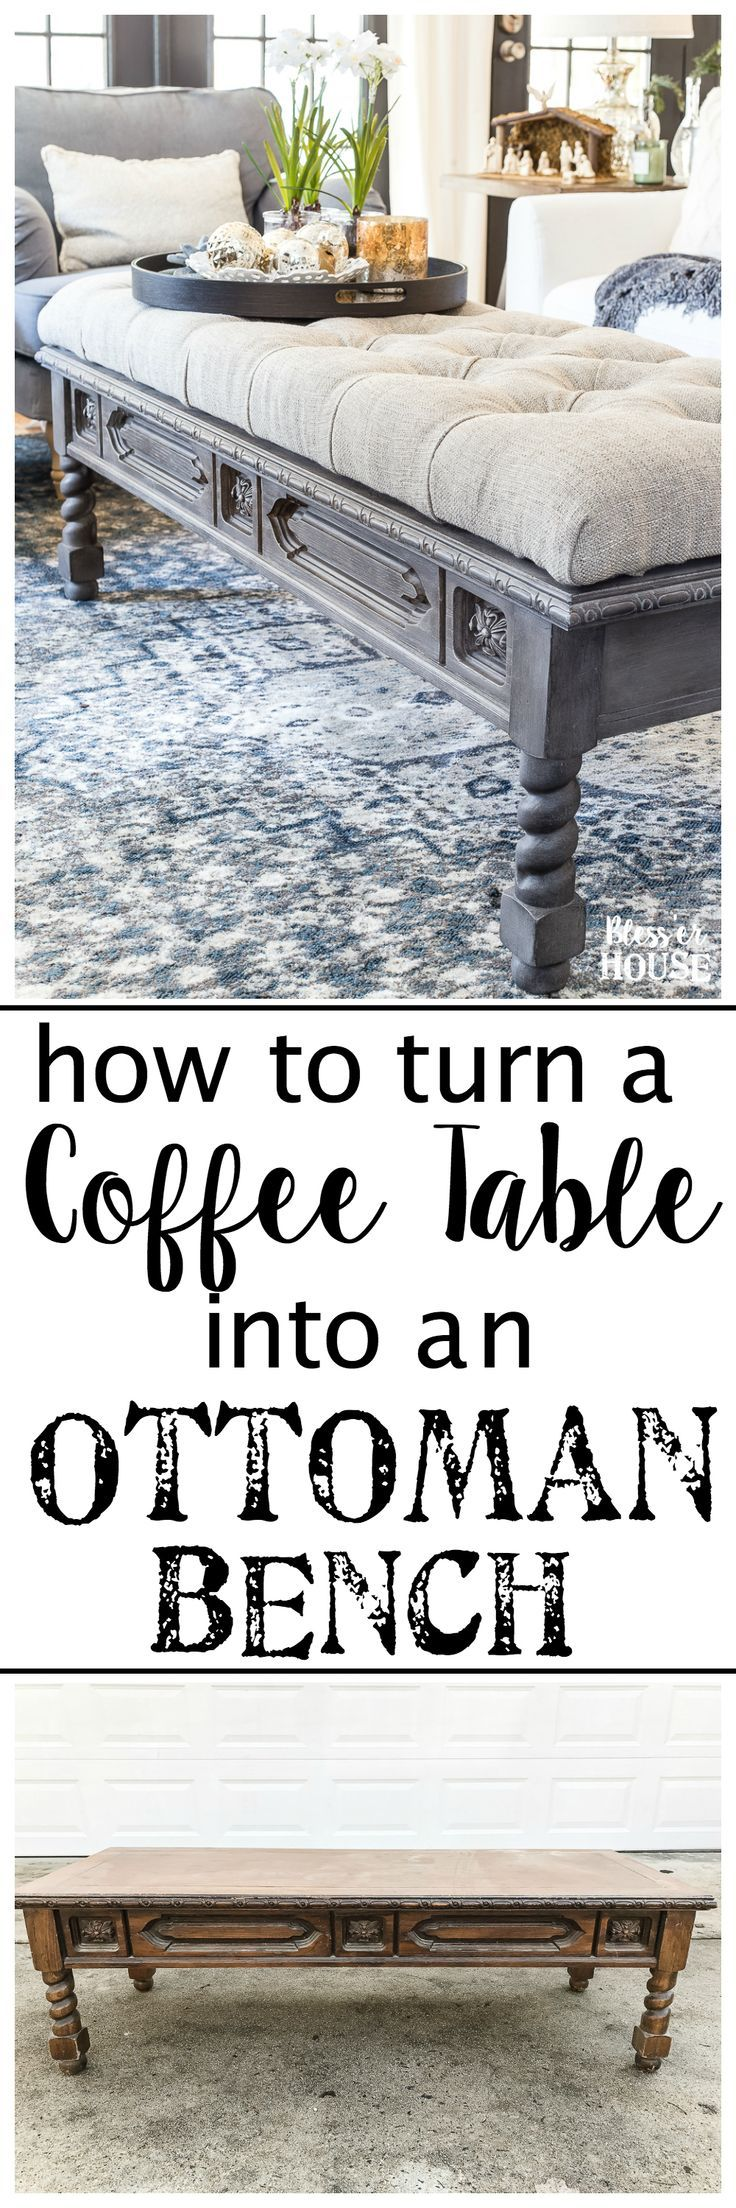 DIY Ottoman Bench from a Repurposed Thrift Store Coffee Table | blesserhouse.com - How to repurpose an old coffee table into a designer-inspired ottoman bench with tips for getting a faux weathered wood look and how to tuft upholstery #furnituremakeover #